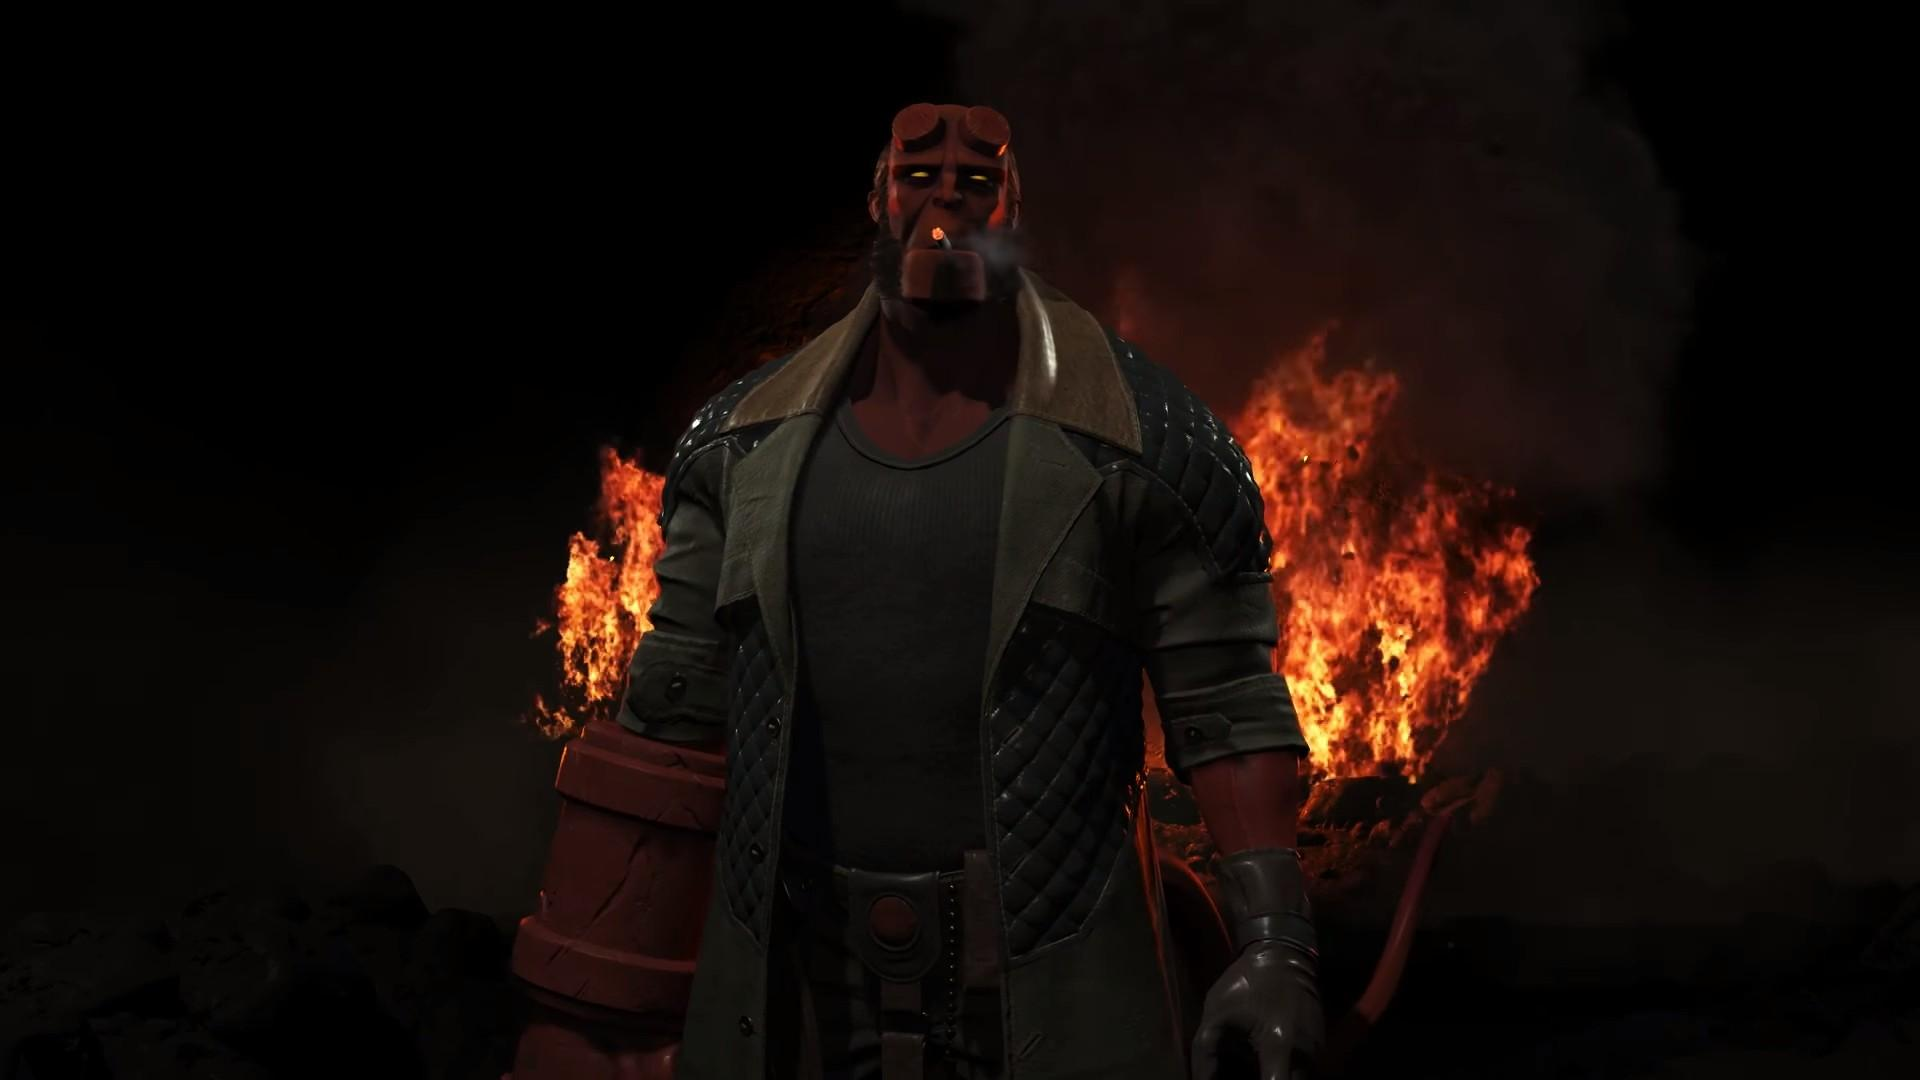 Hellboy is coming to Injustice 2